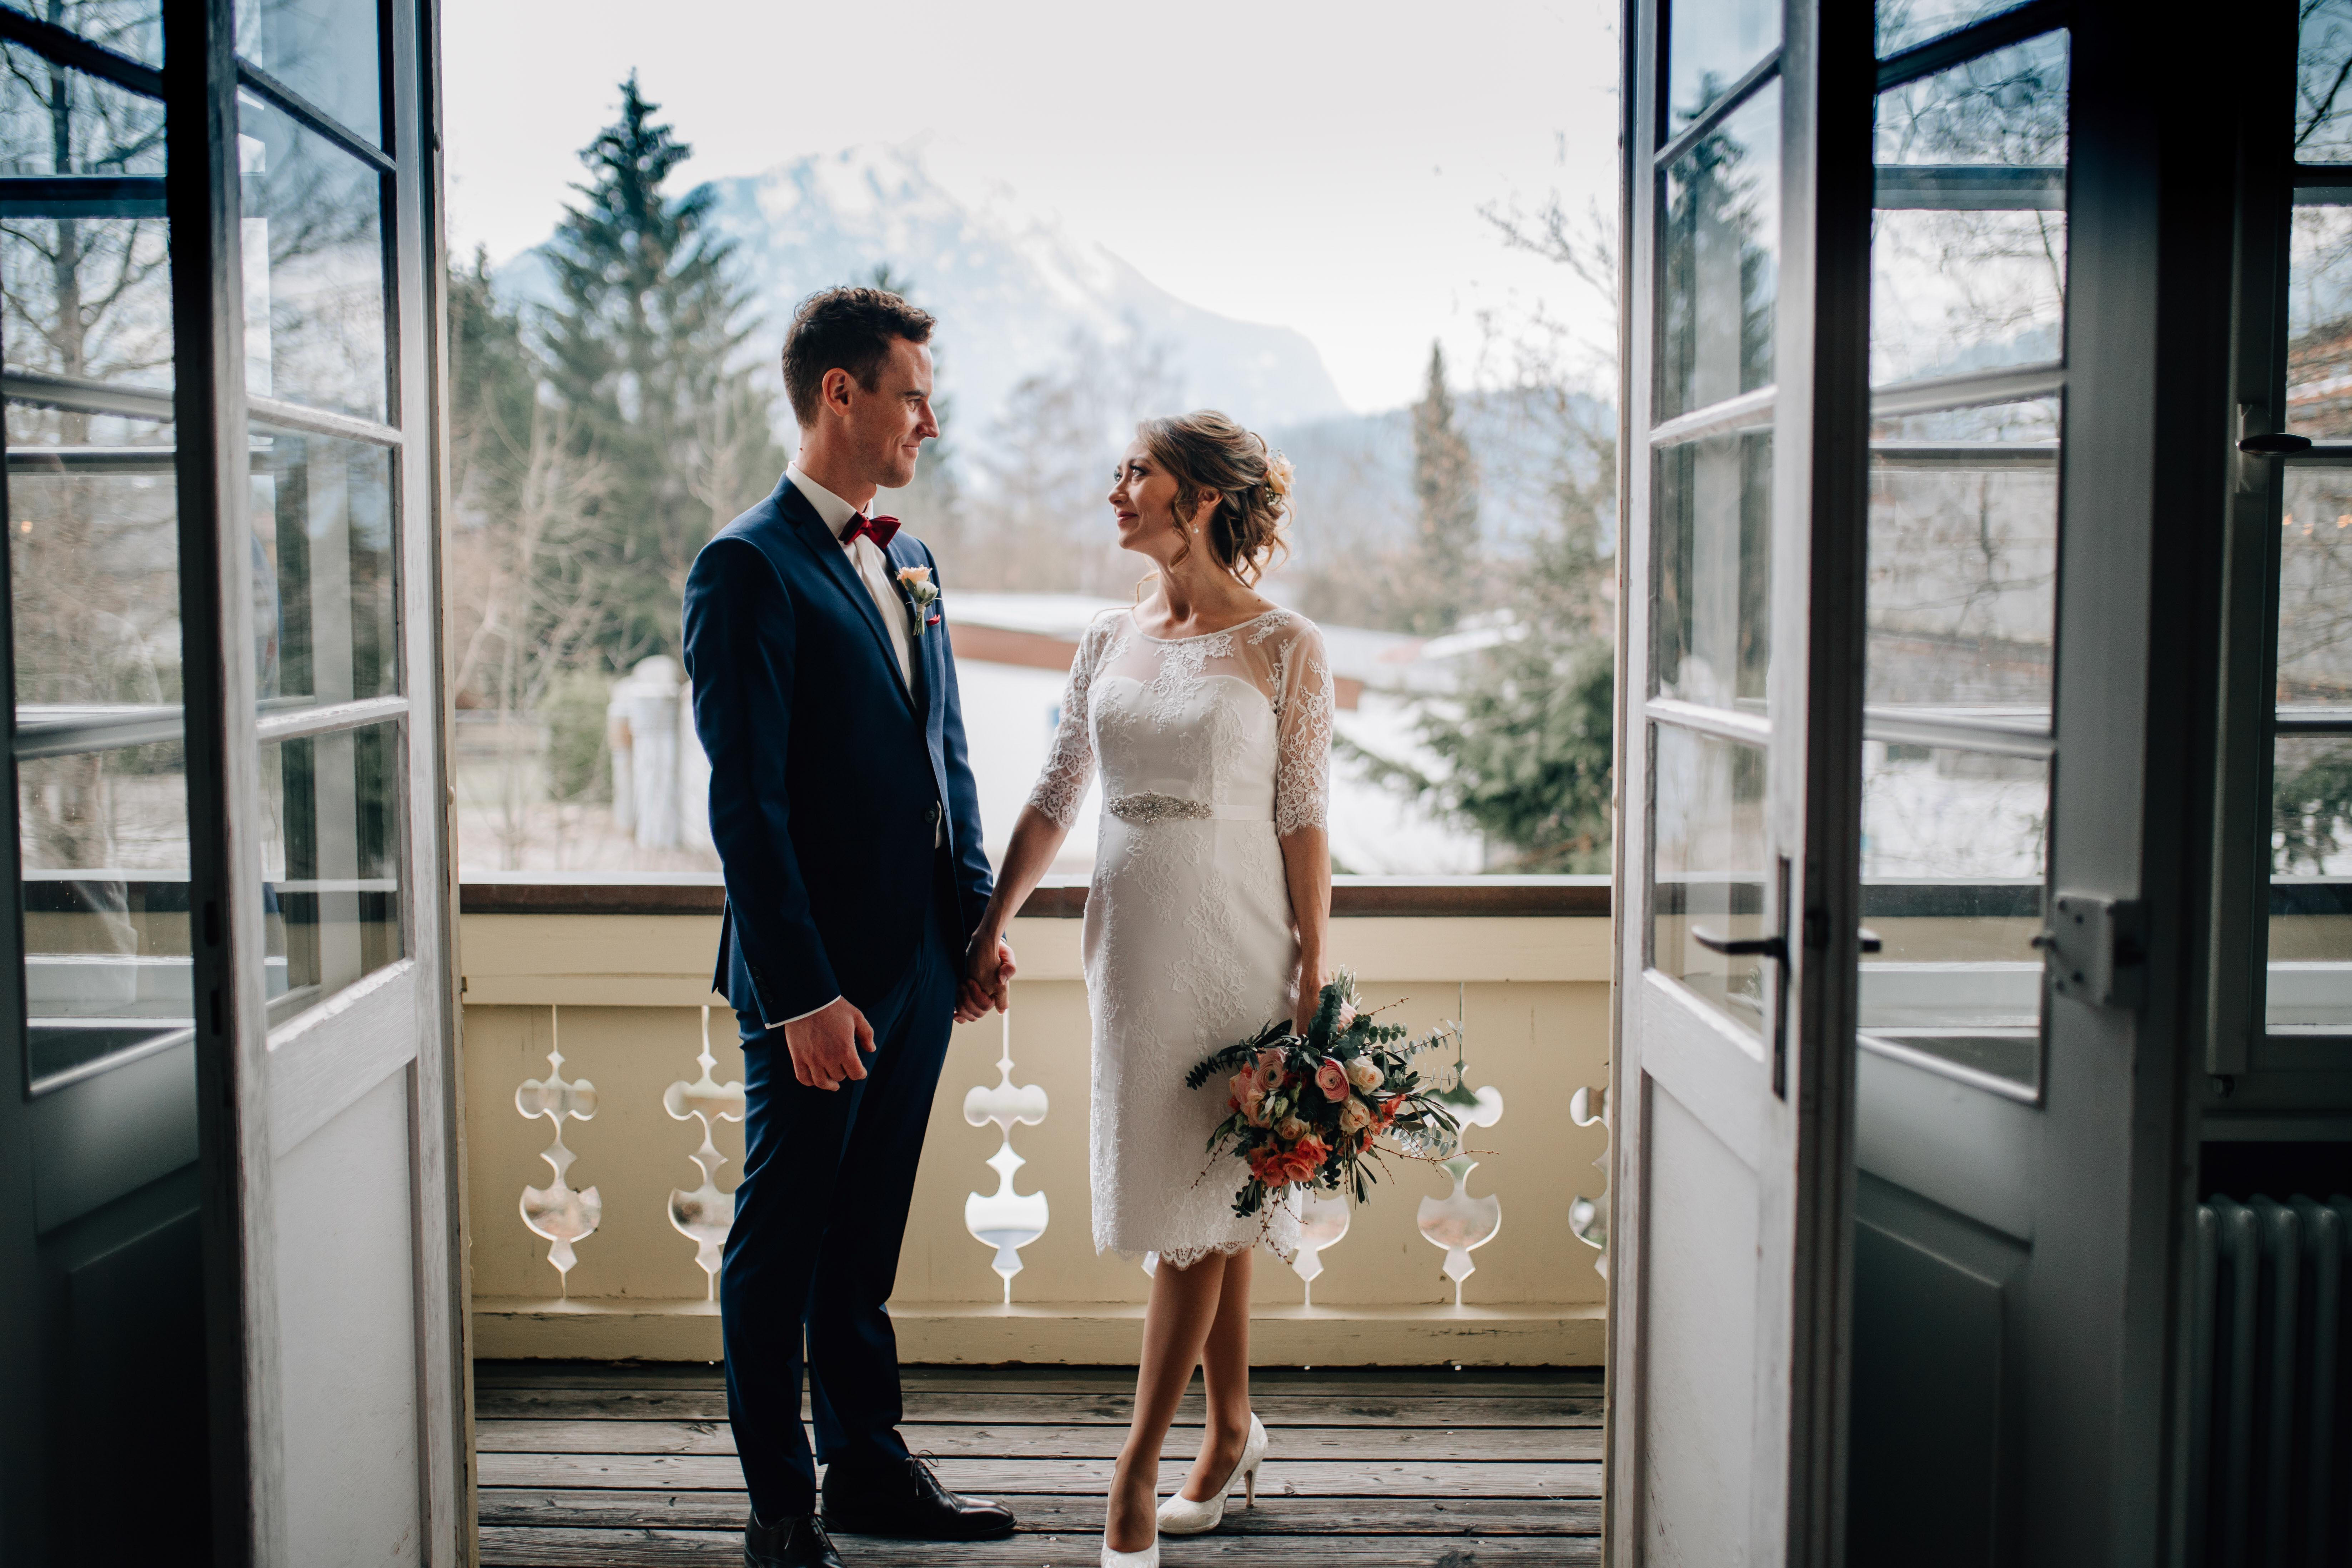 Weddingshooting Allgäu